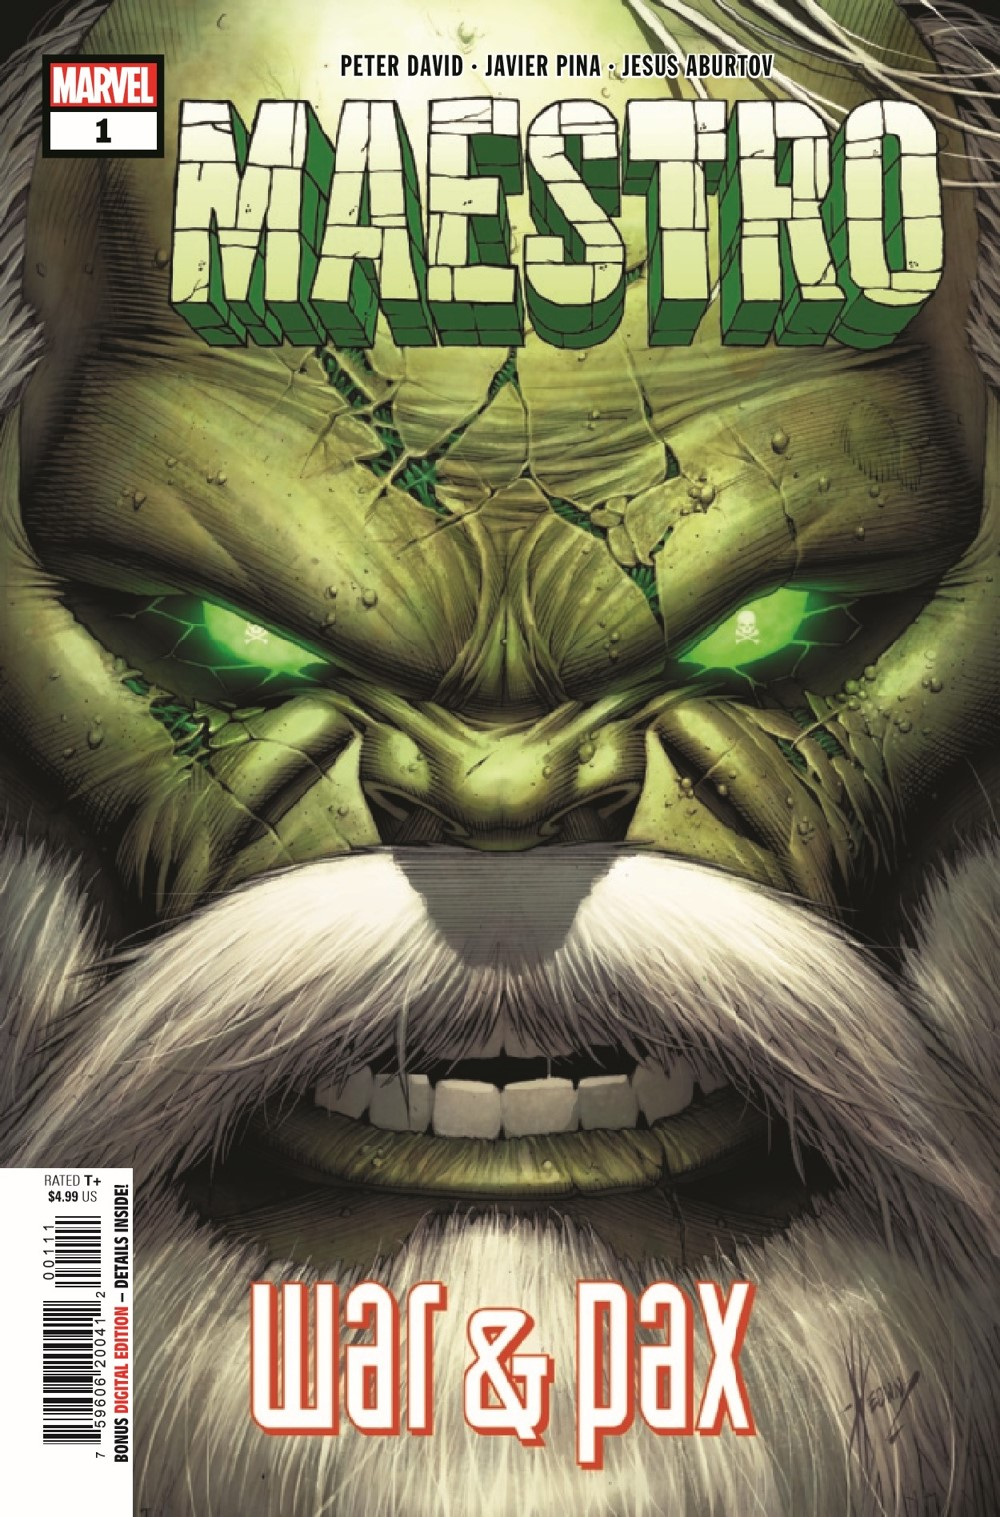 MAESTROWAP2021001_Preview-1 ComicList Previews: MAESTRO WAR AND PAX #1 (OF 5)